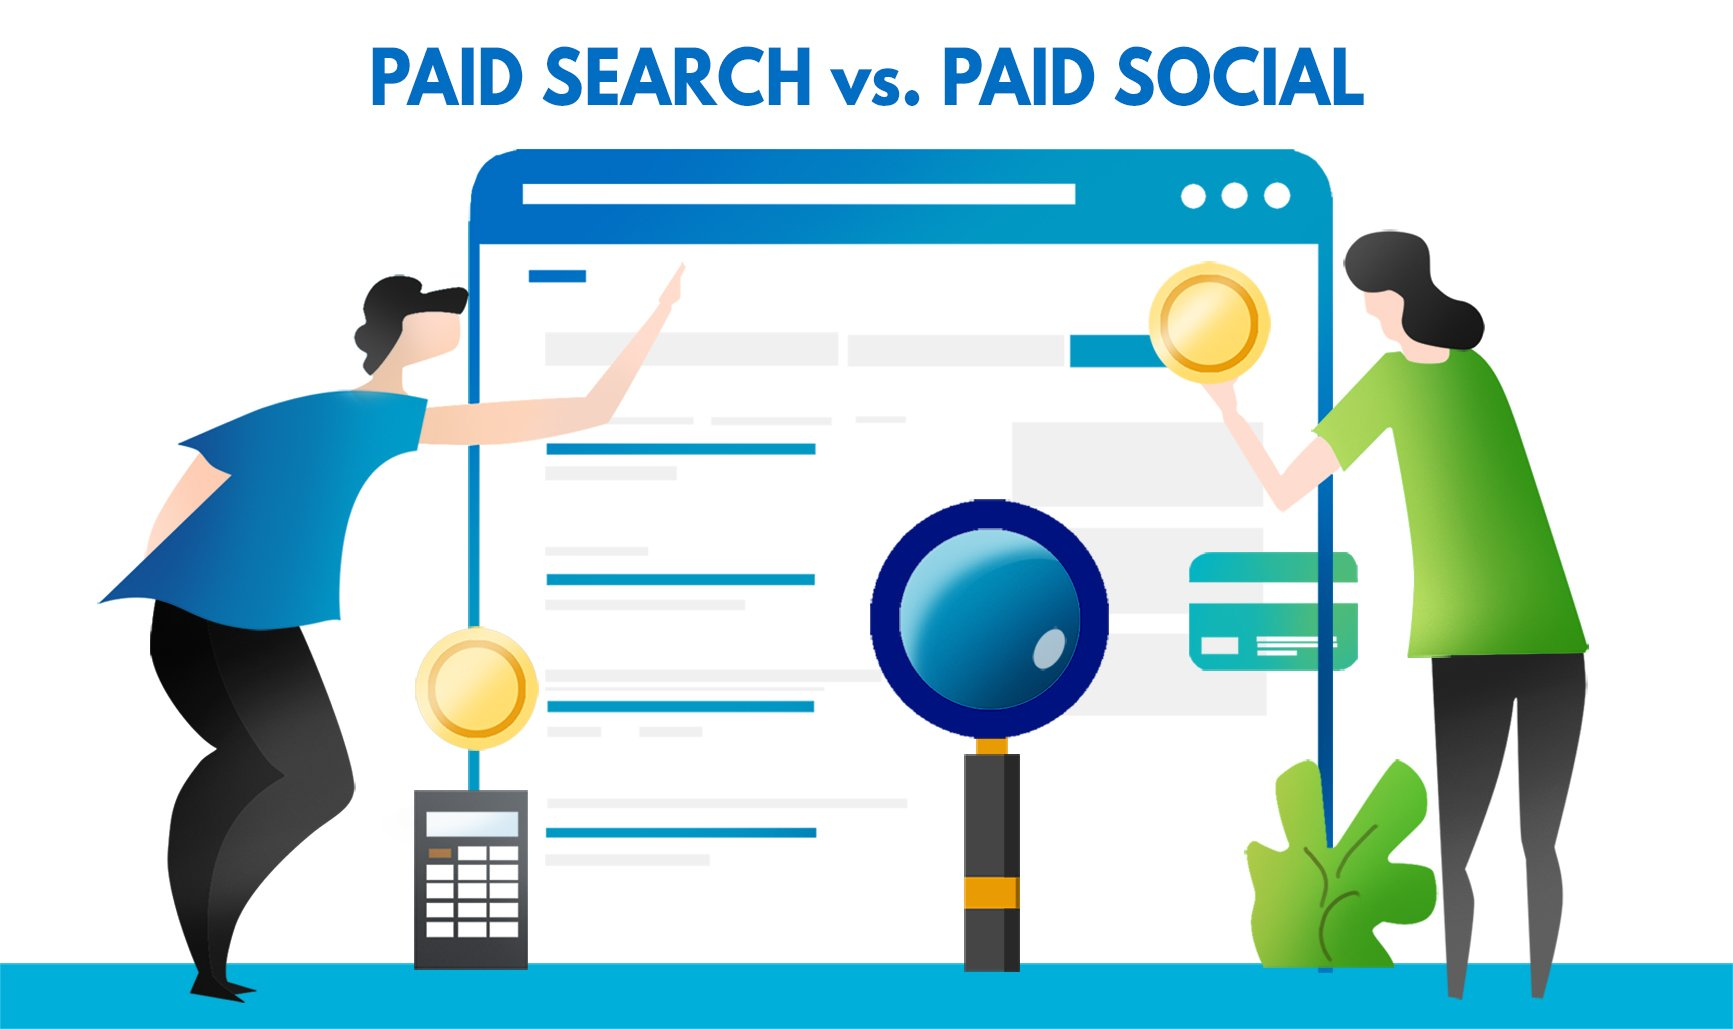 paid search vs paid social-come-scegliere-piattaforma-giusta